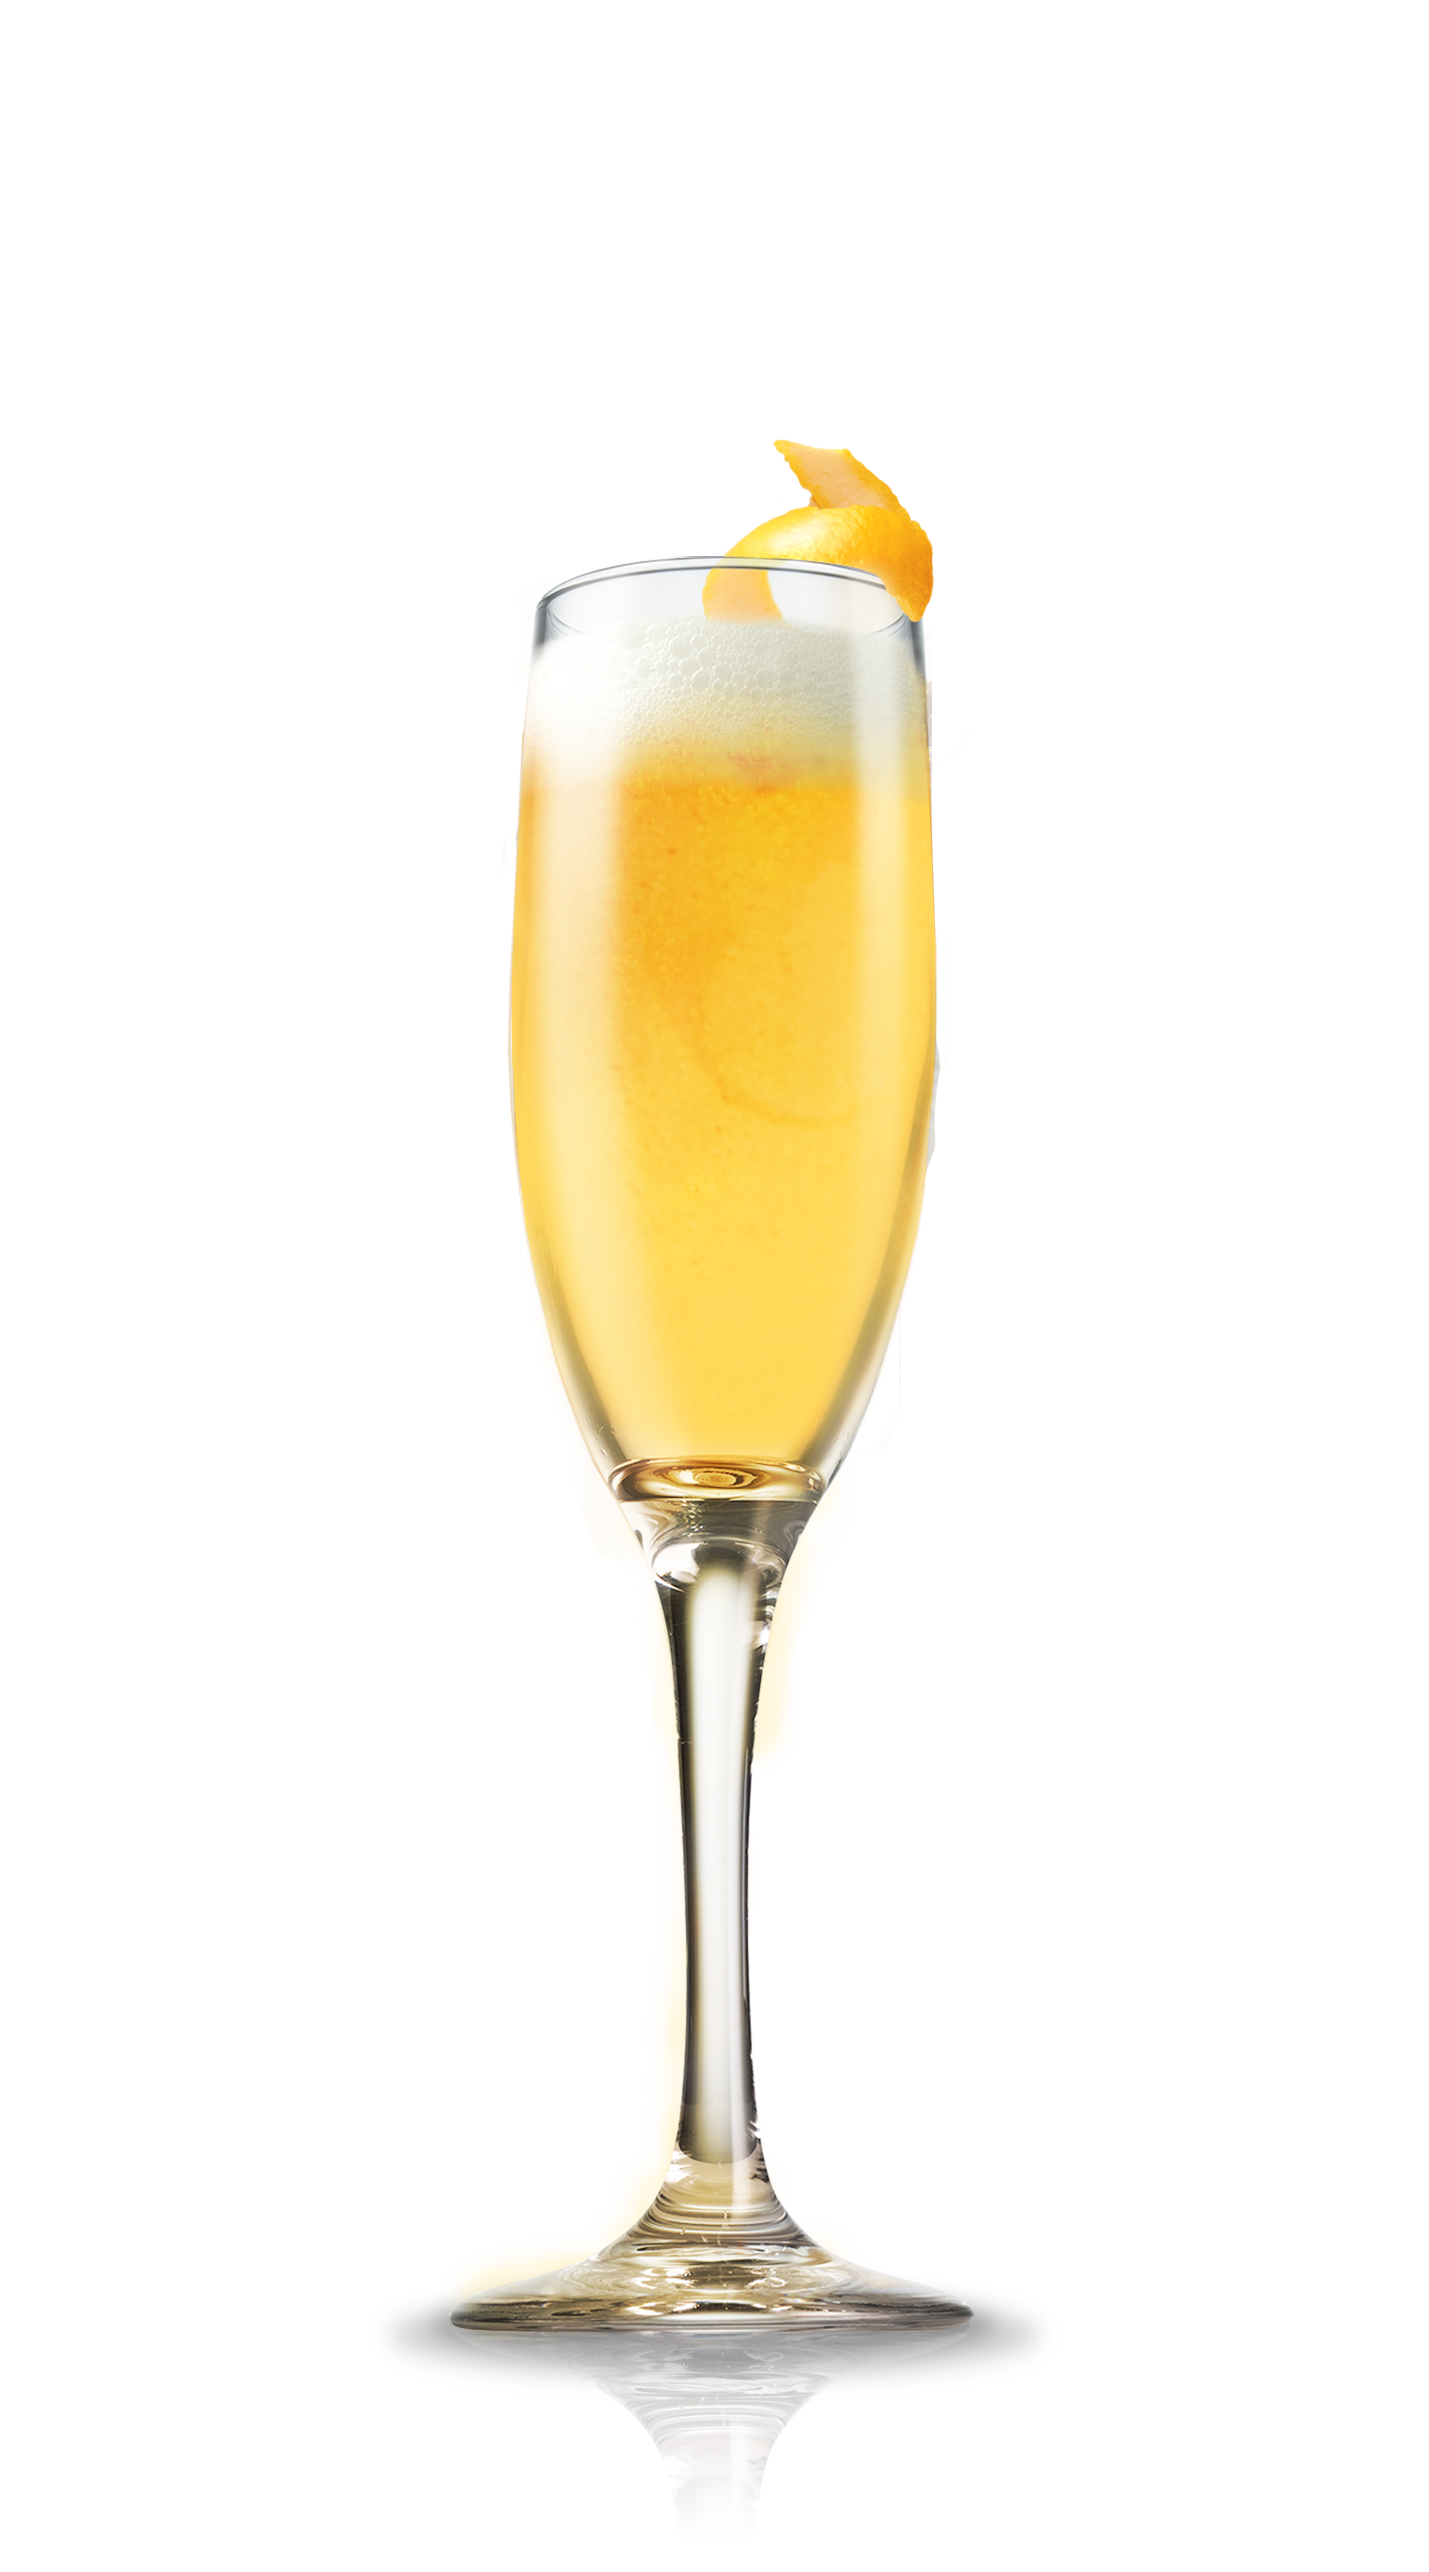 Cocktail clipart punch drink. Mimosa ingredients parts orange